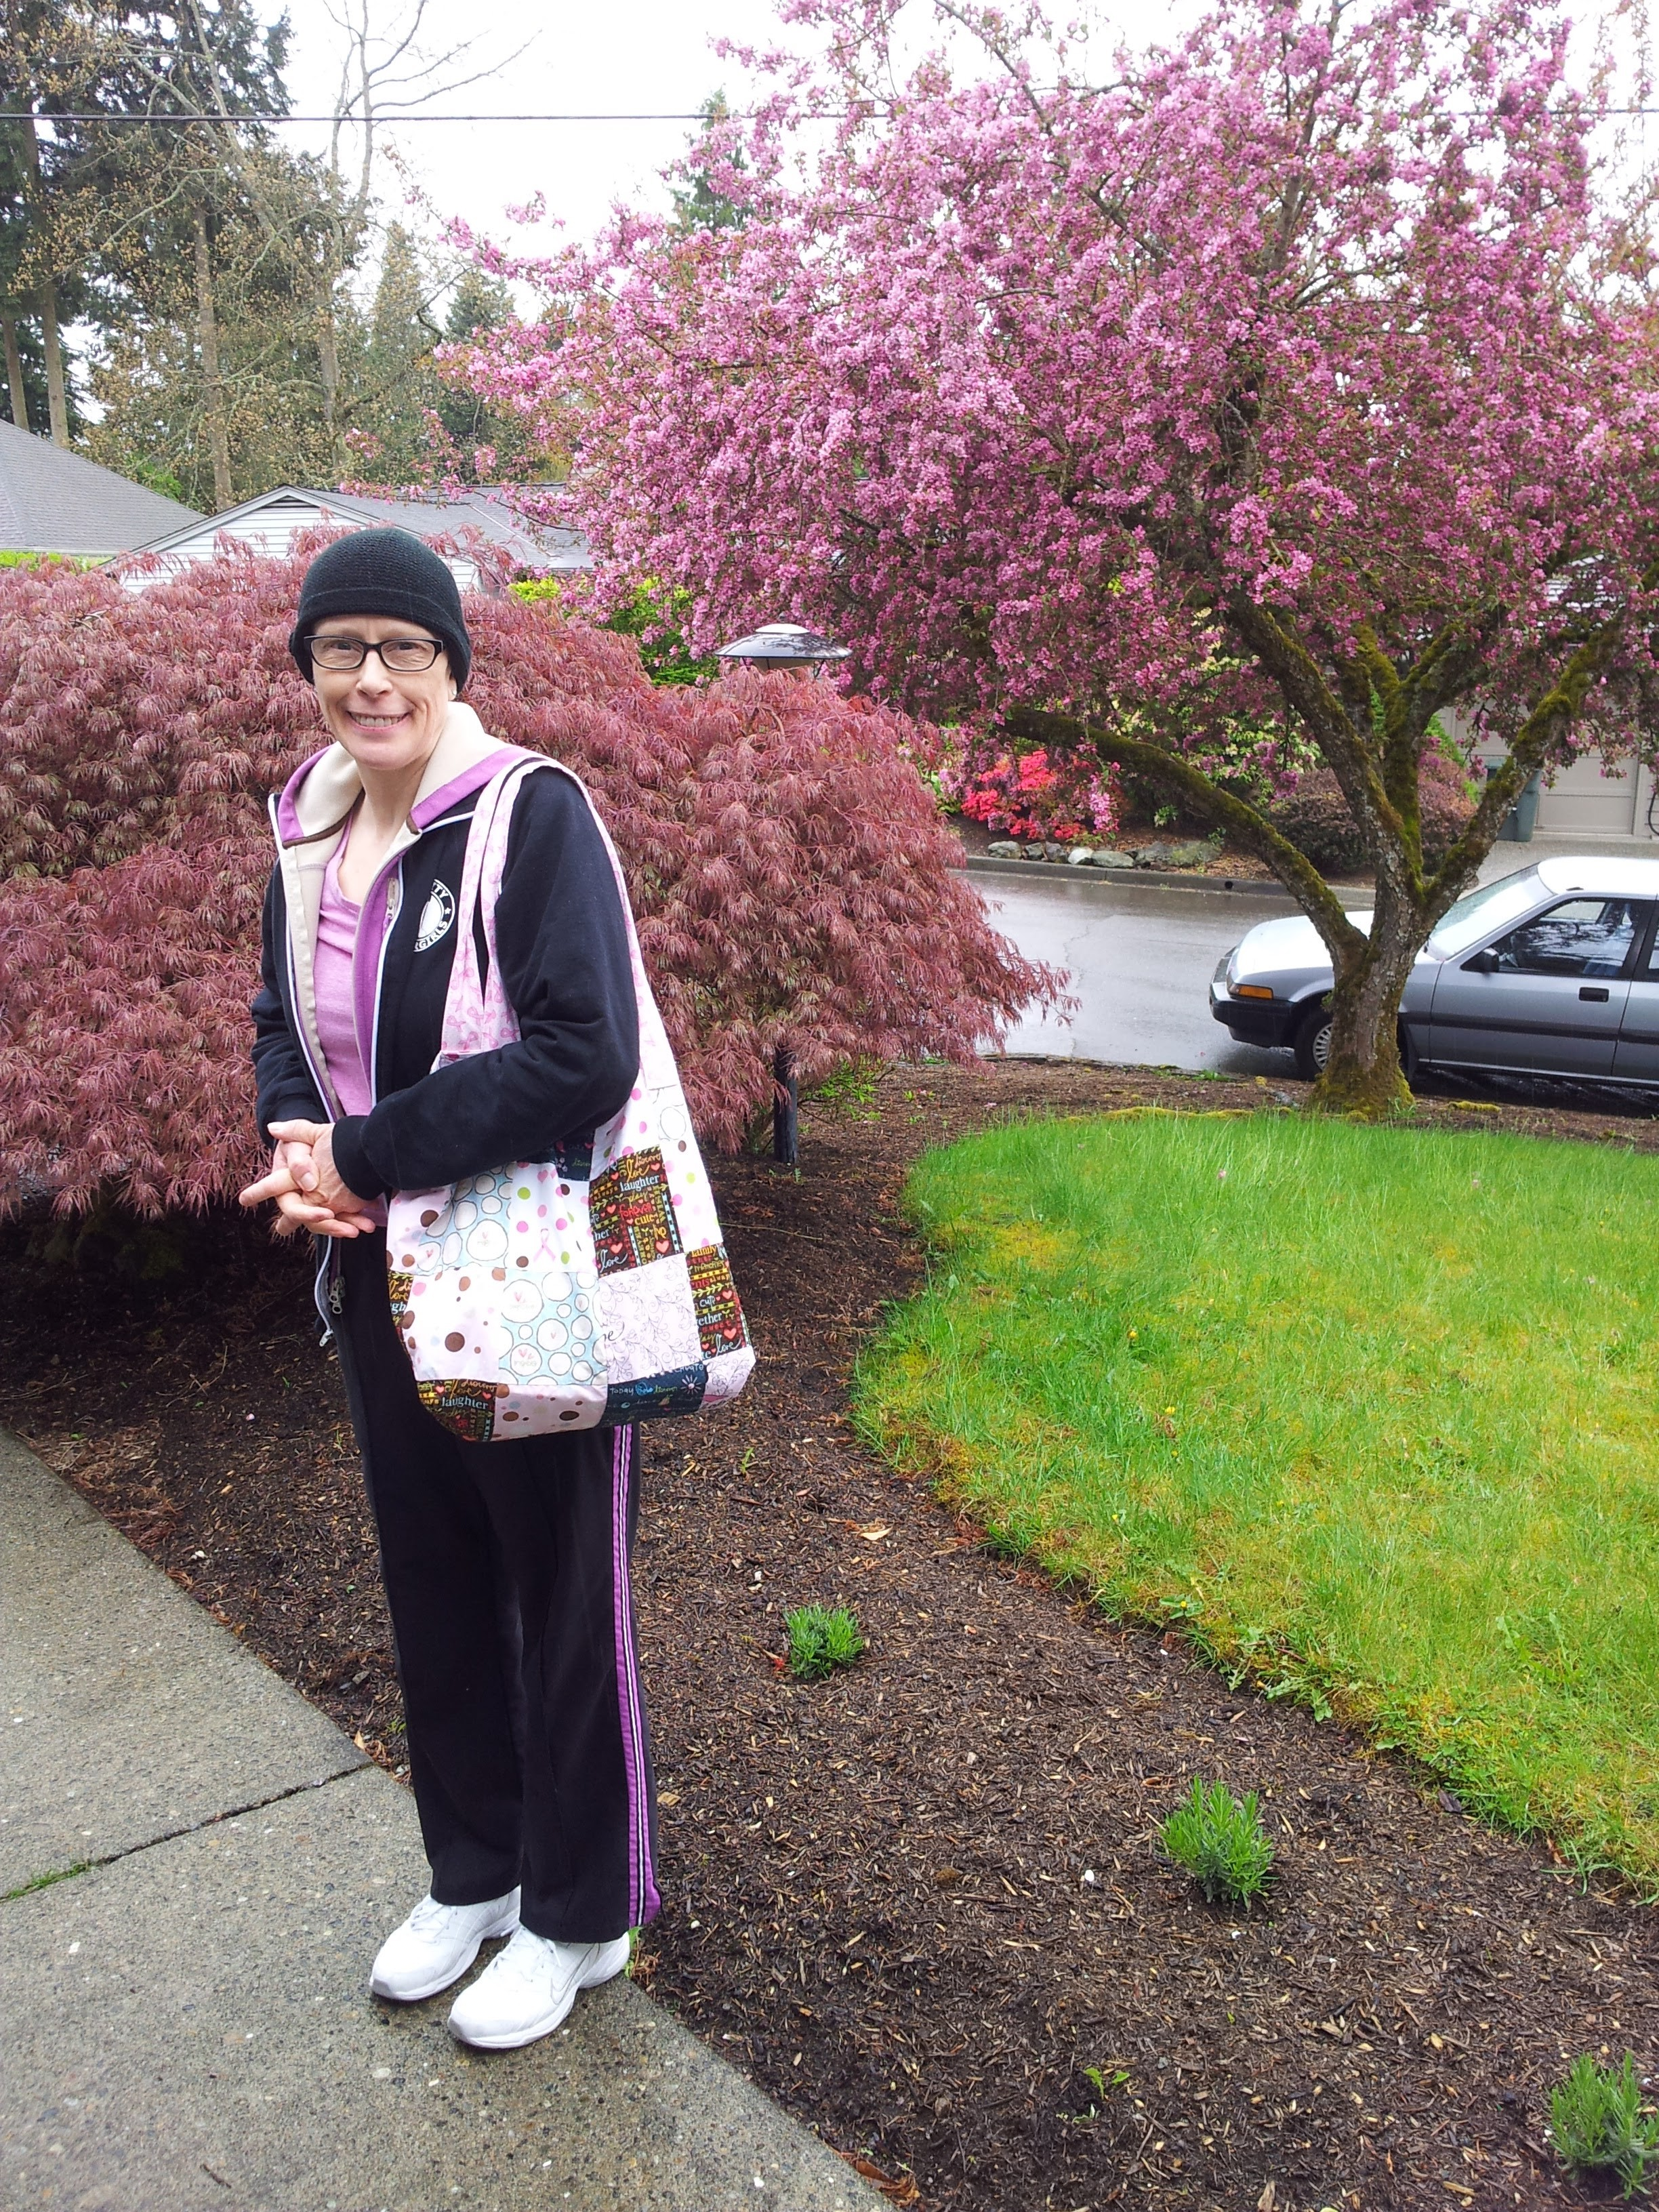 She wanted to show off the bag a friend made for her and show off her love for the color pink.